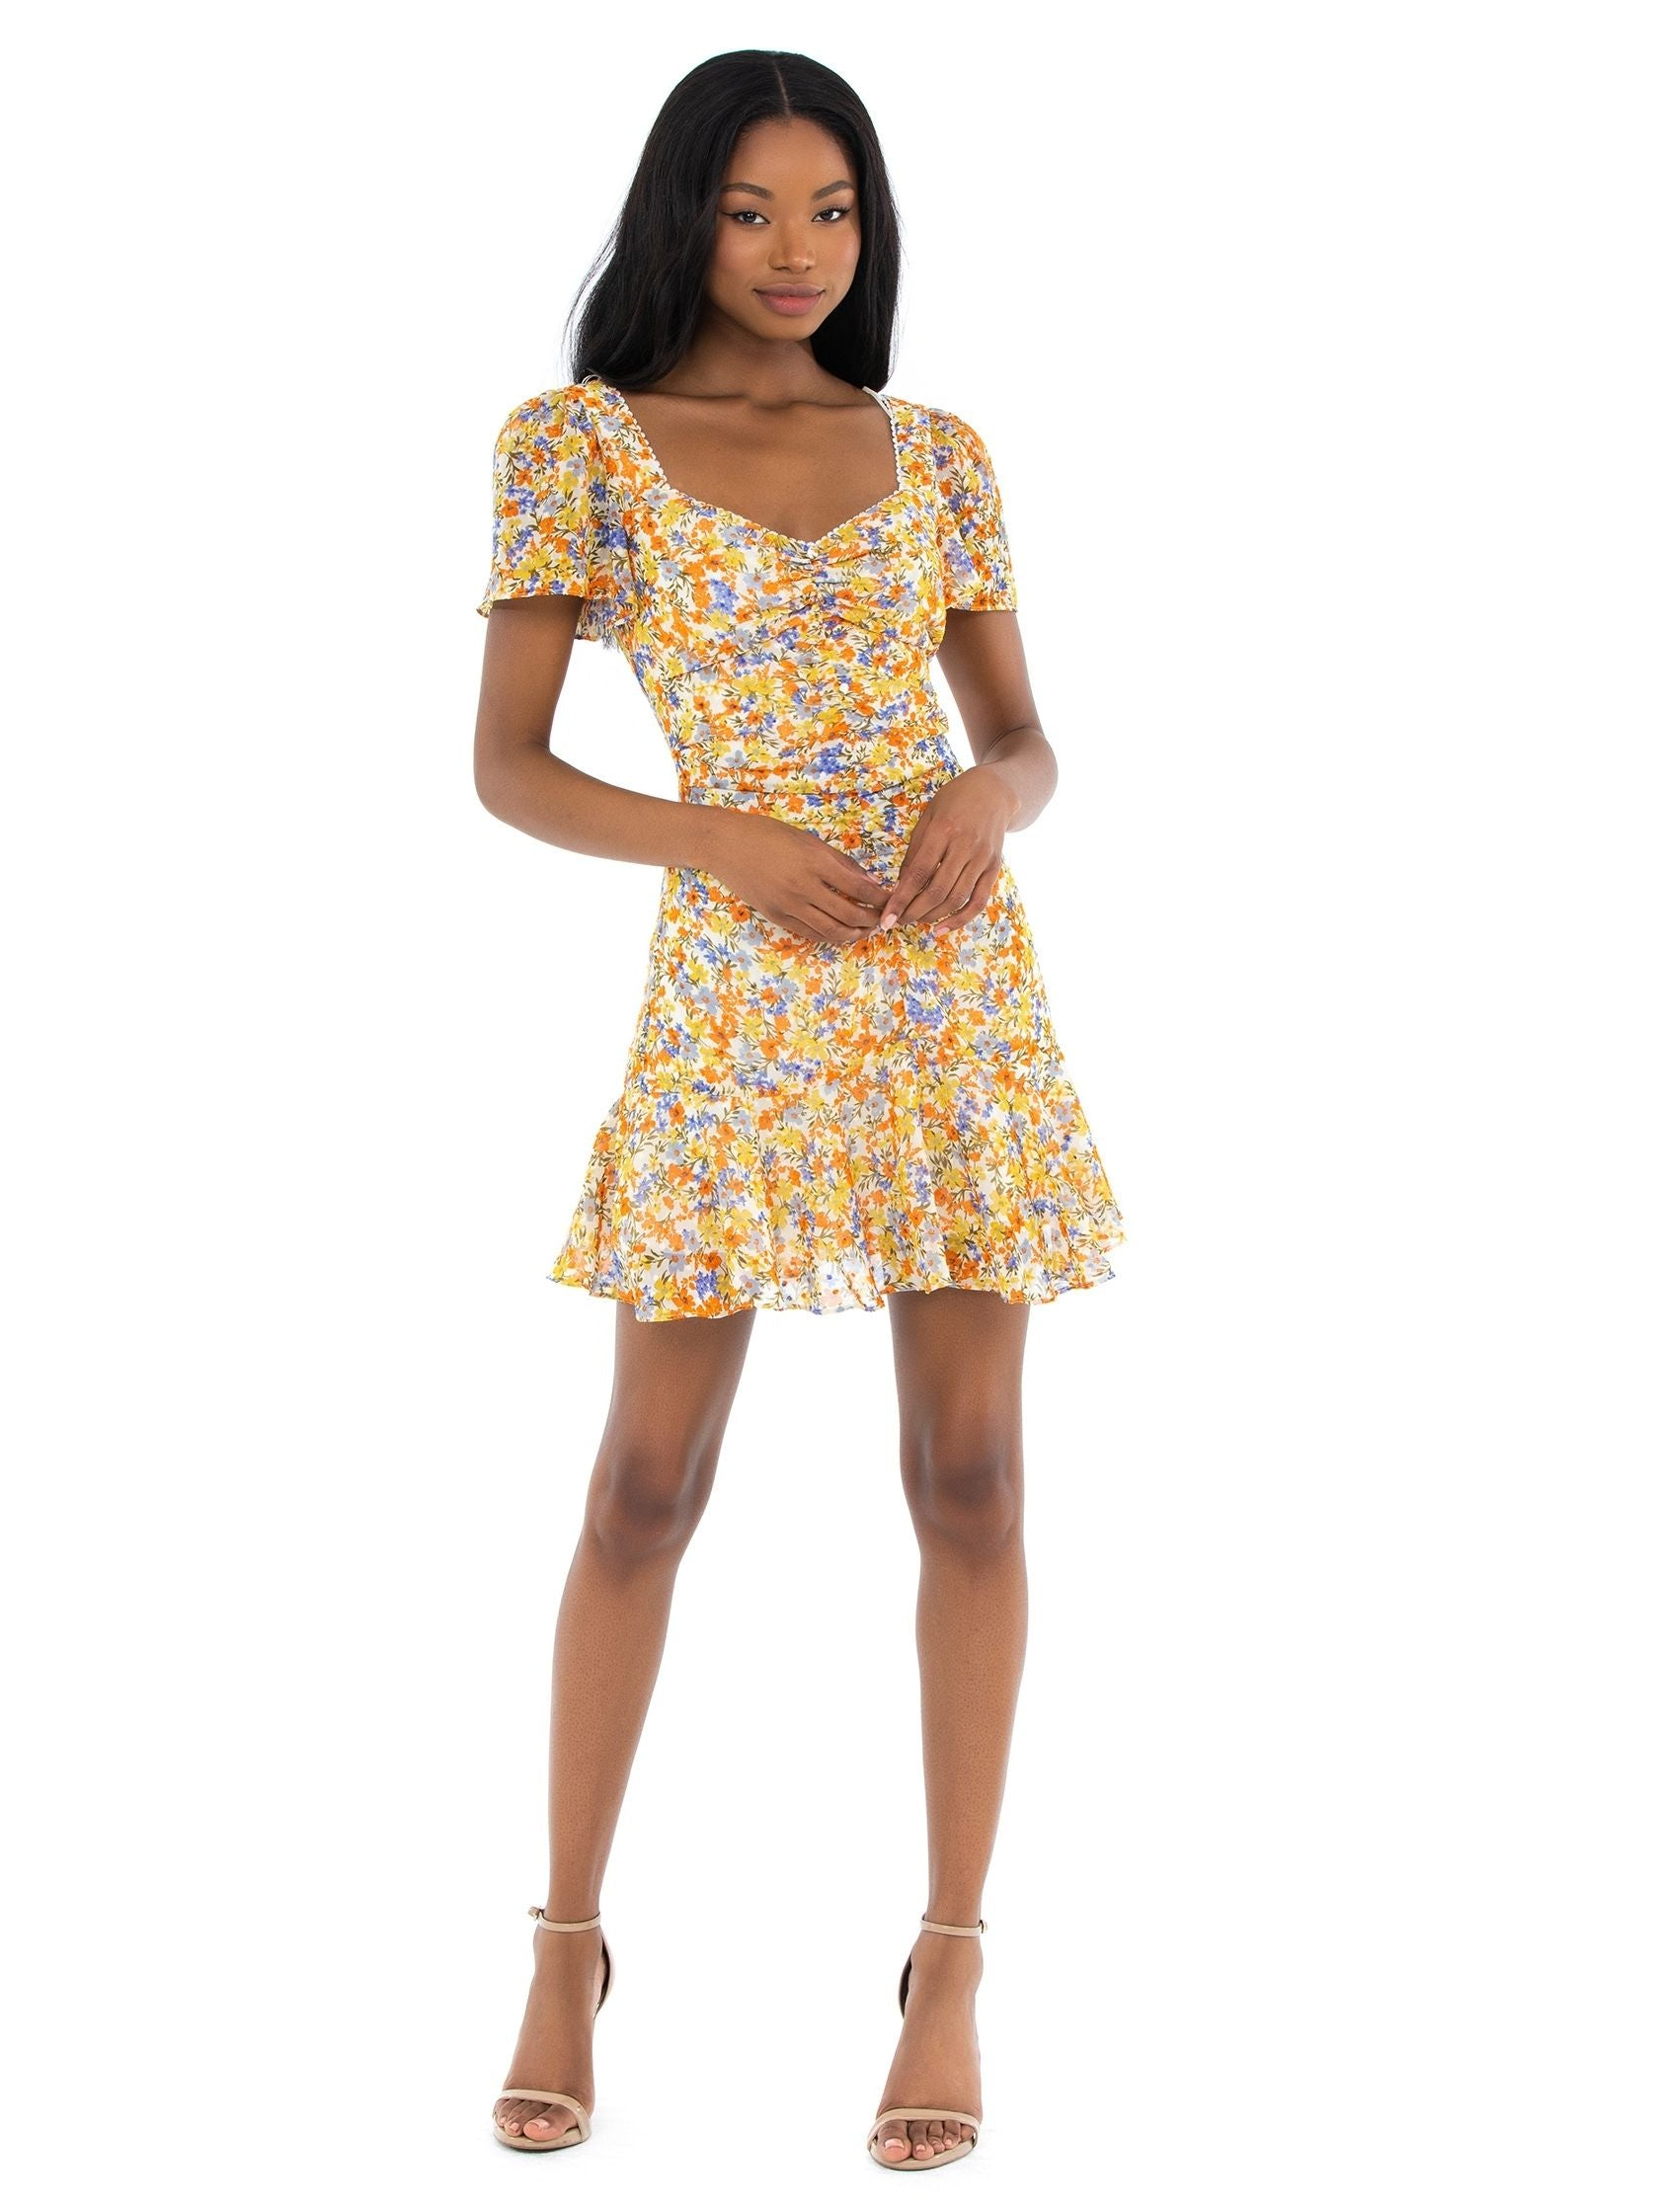 Girl outfit in a dress rental from ASTR called So Smitten Dress